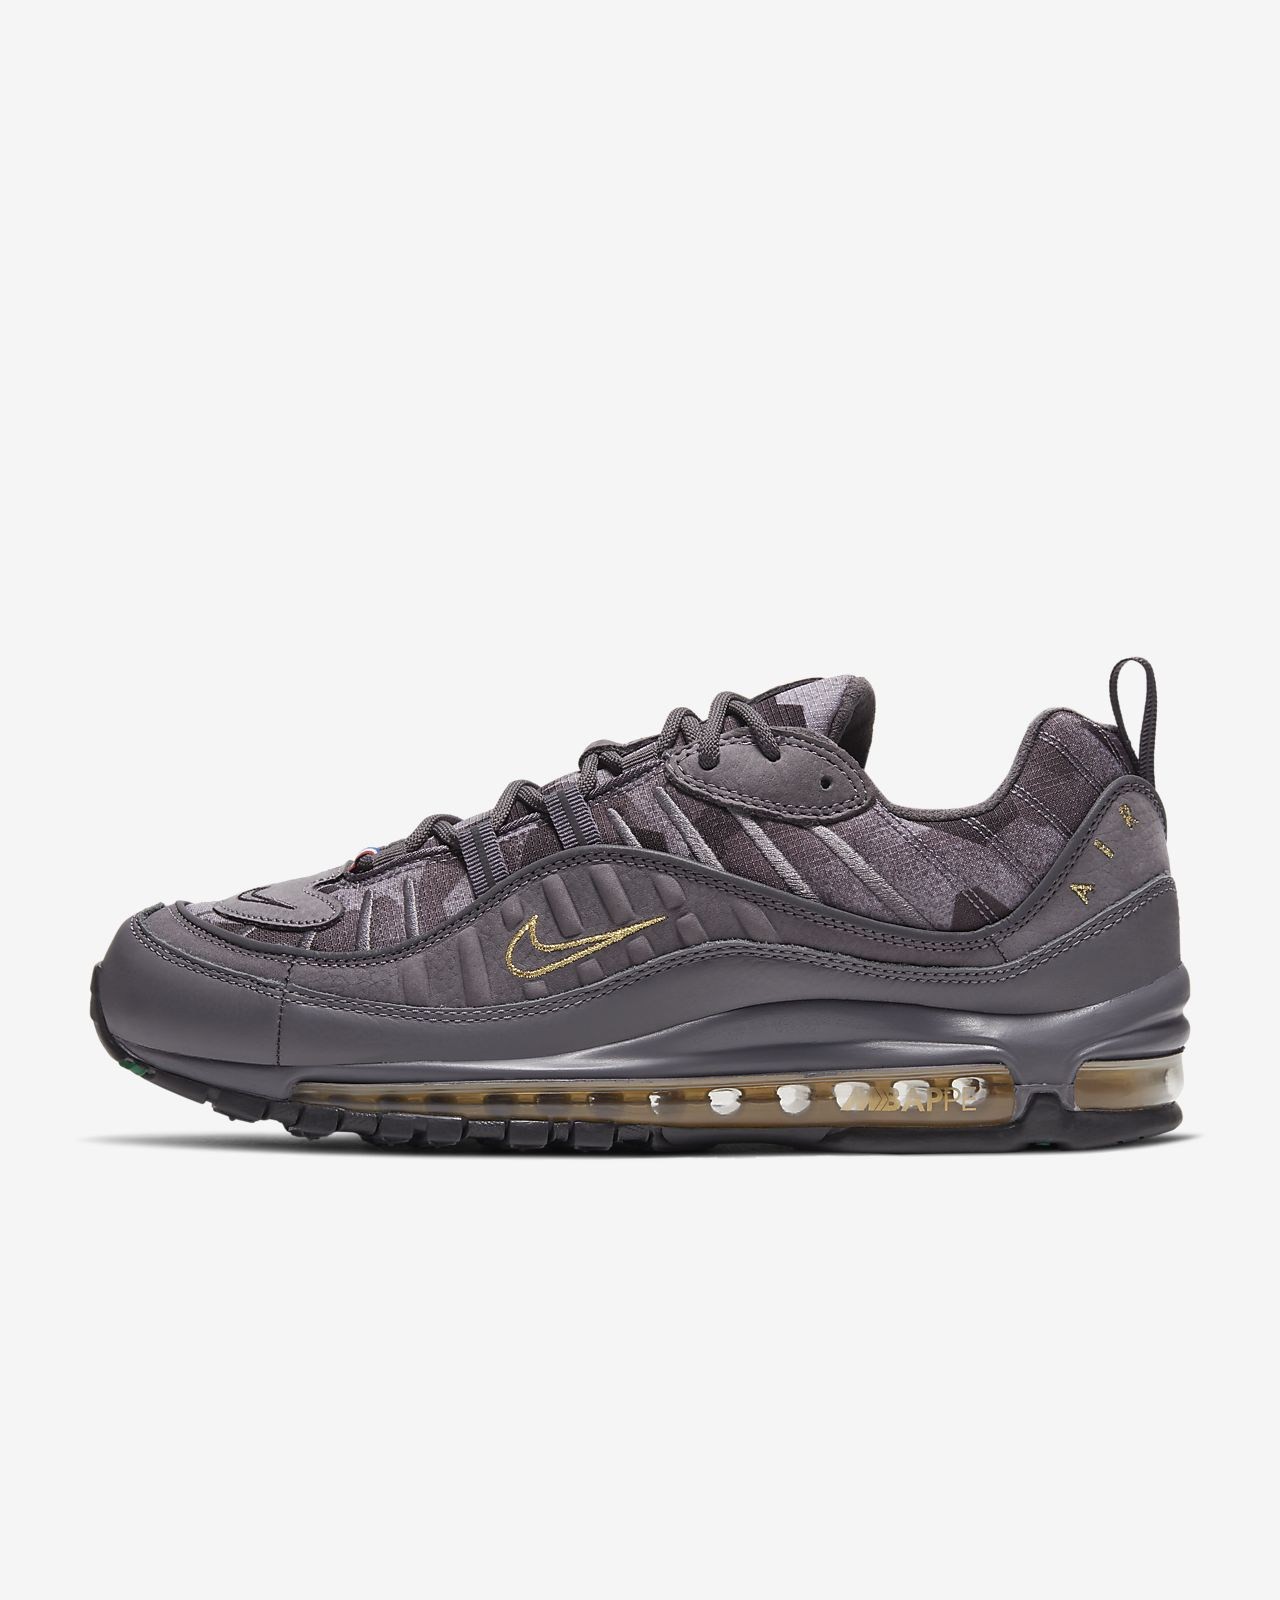 £94.99 Nike Air Max 97 Gs BLACK MONO OG sold by Office Intu